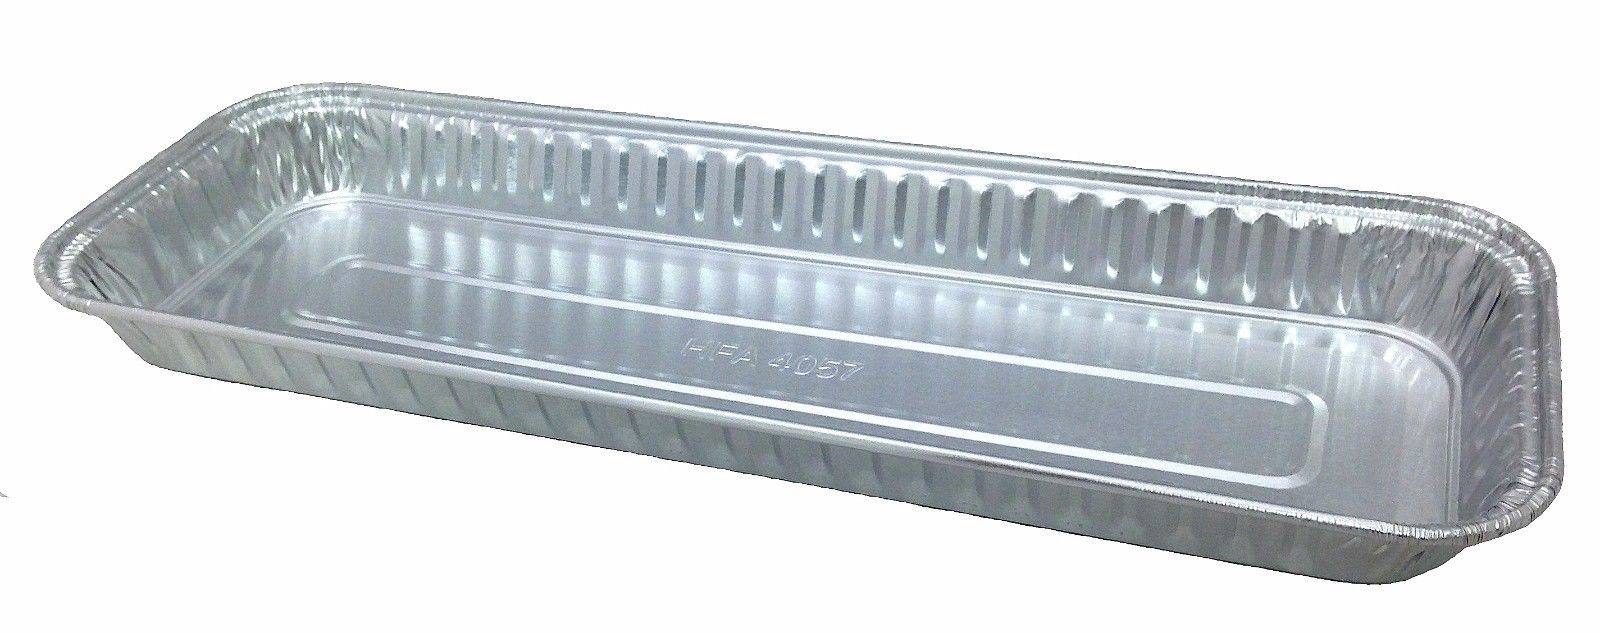 "Handi-Foil 11"" x 4"" Oblong Danish Pan 200/CS"